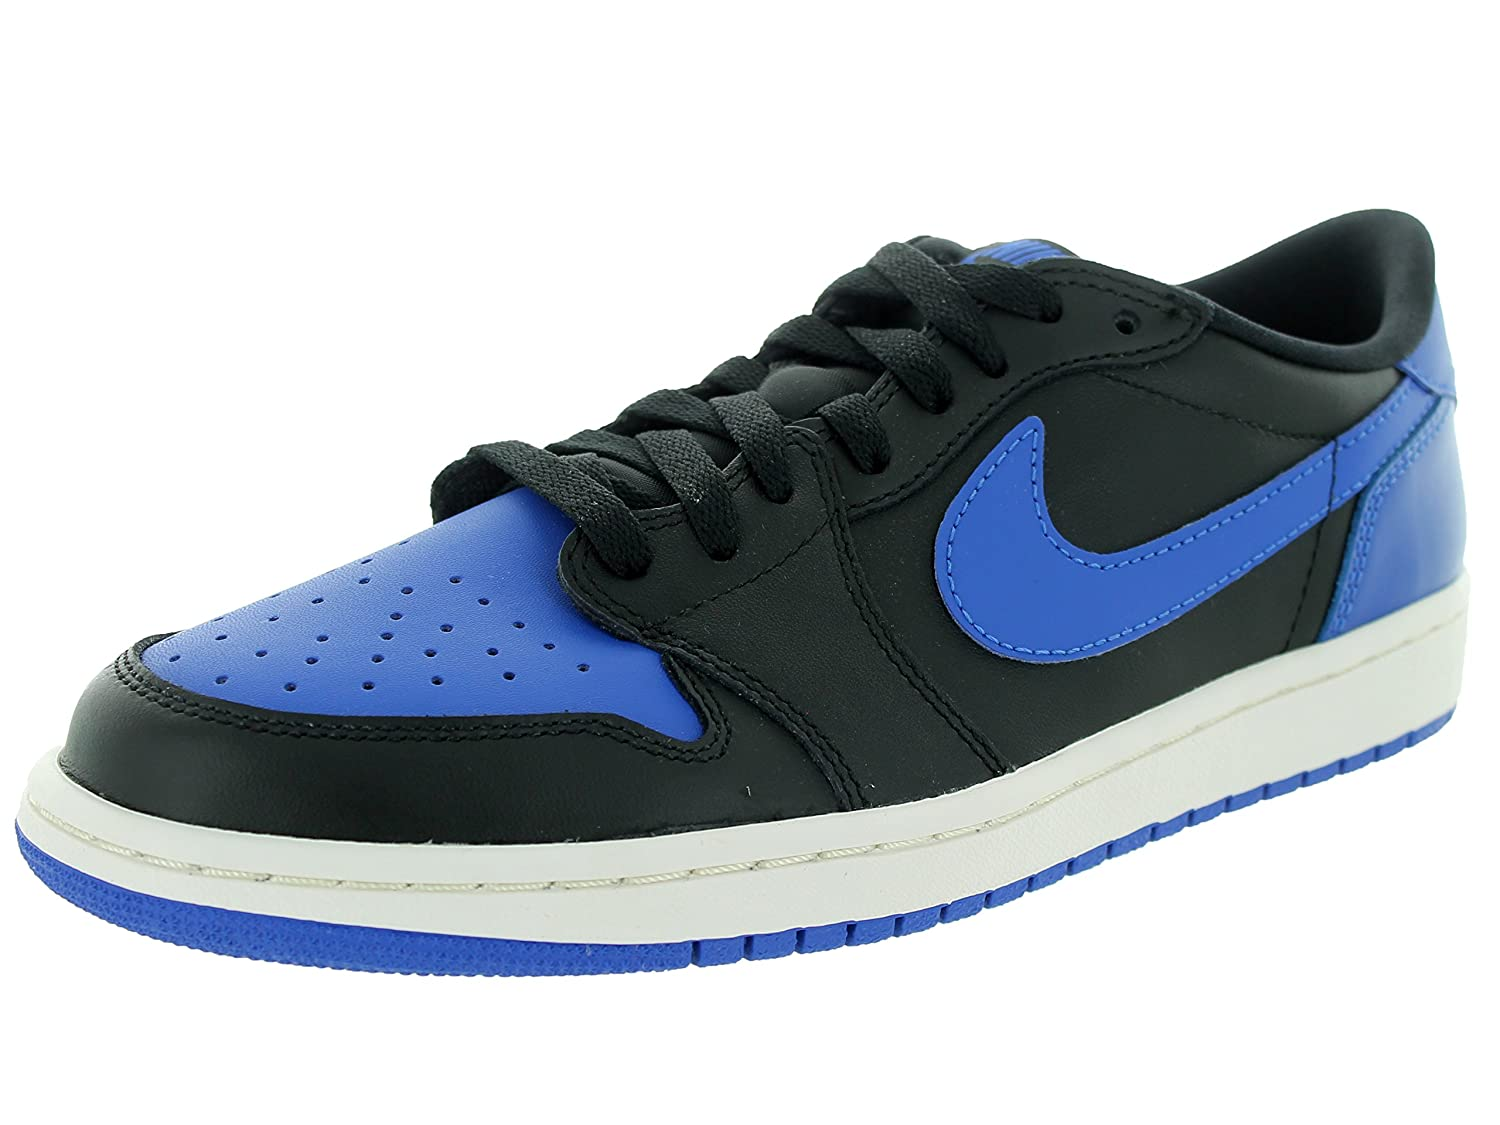 detailed look d8d82 6f587 ... associate degree.de 7b2df def41  top quality nike herren air jordan 1  retro low og turnschuhe talla 45 eublau schwarz schwarz